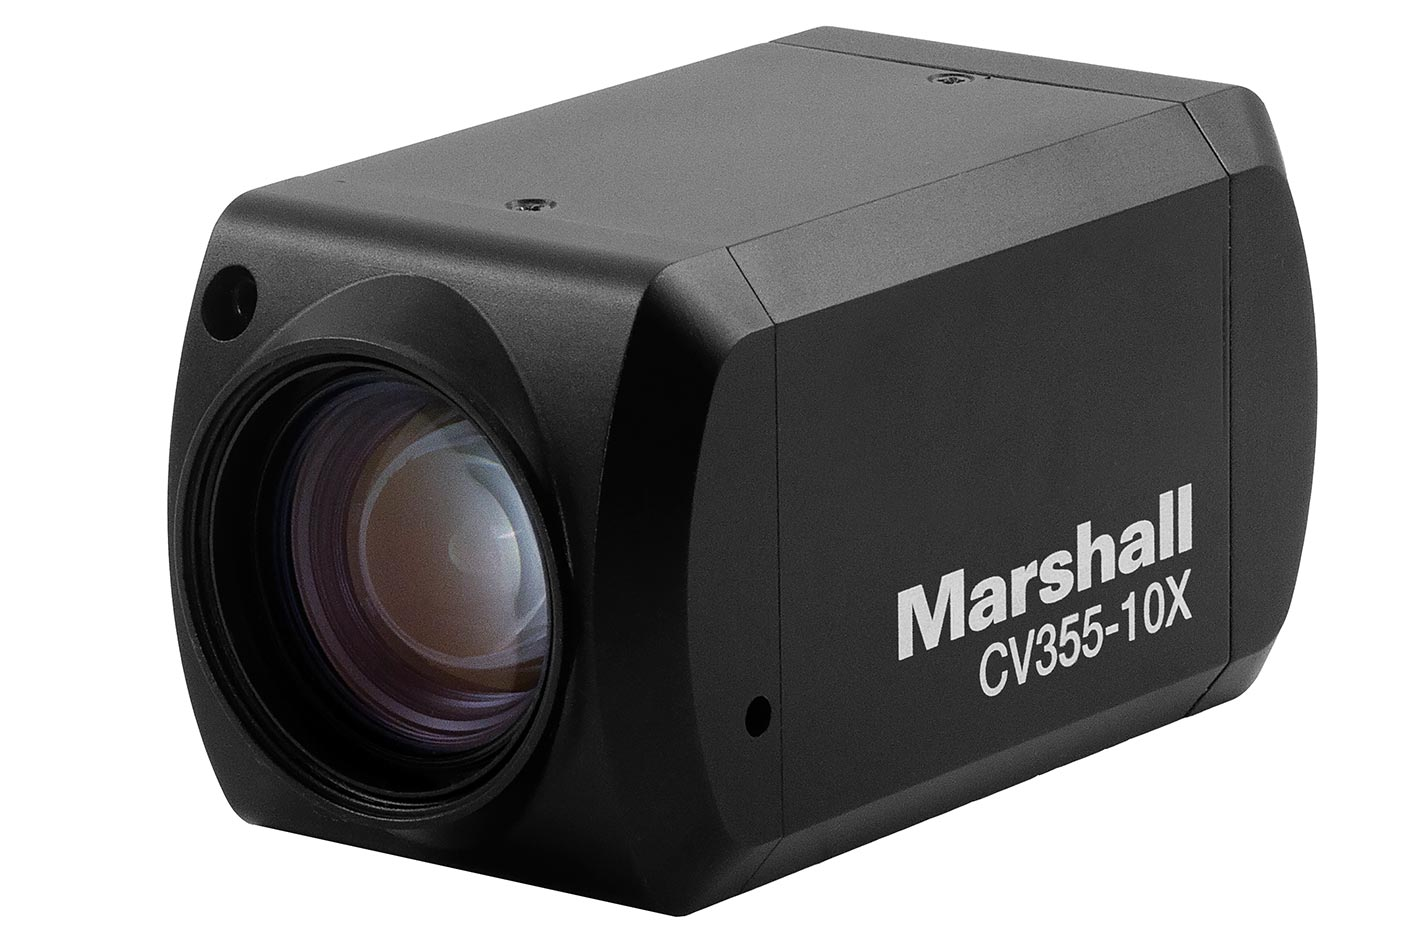 Marshall: new CV420-18X and CV355-10X zoom block cameras